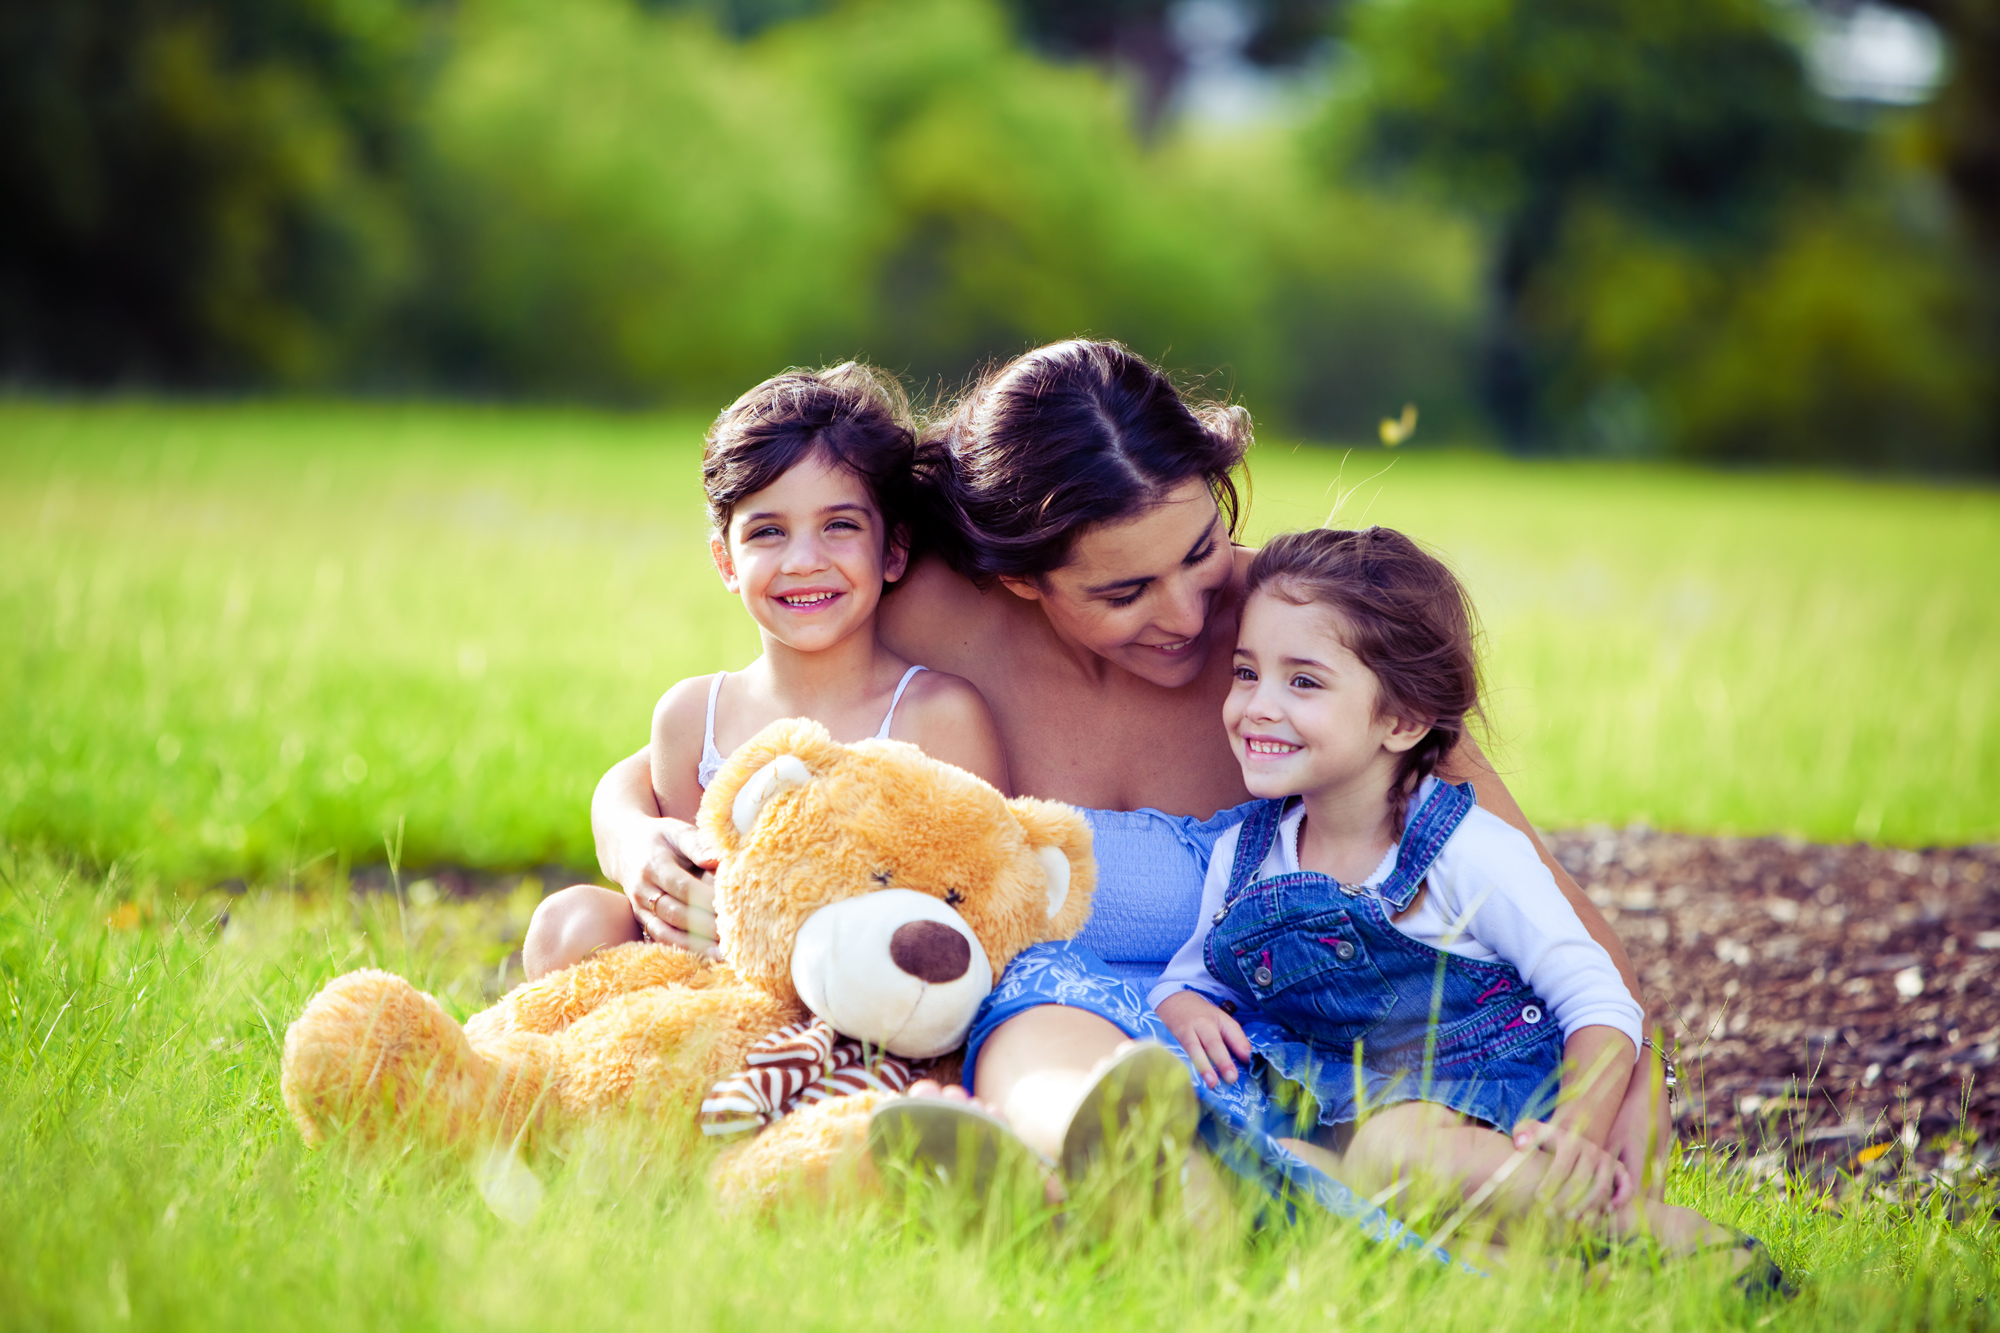 mother-playing-with-2-kids